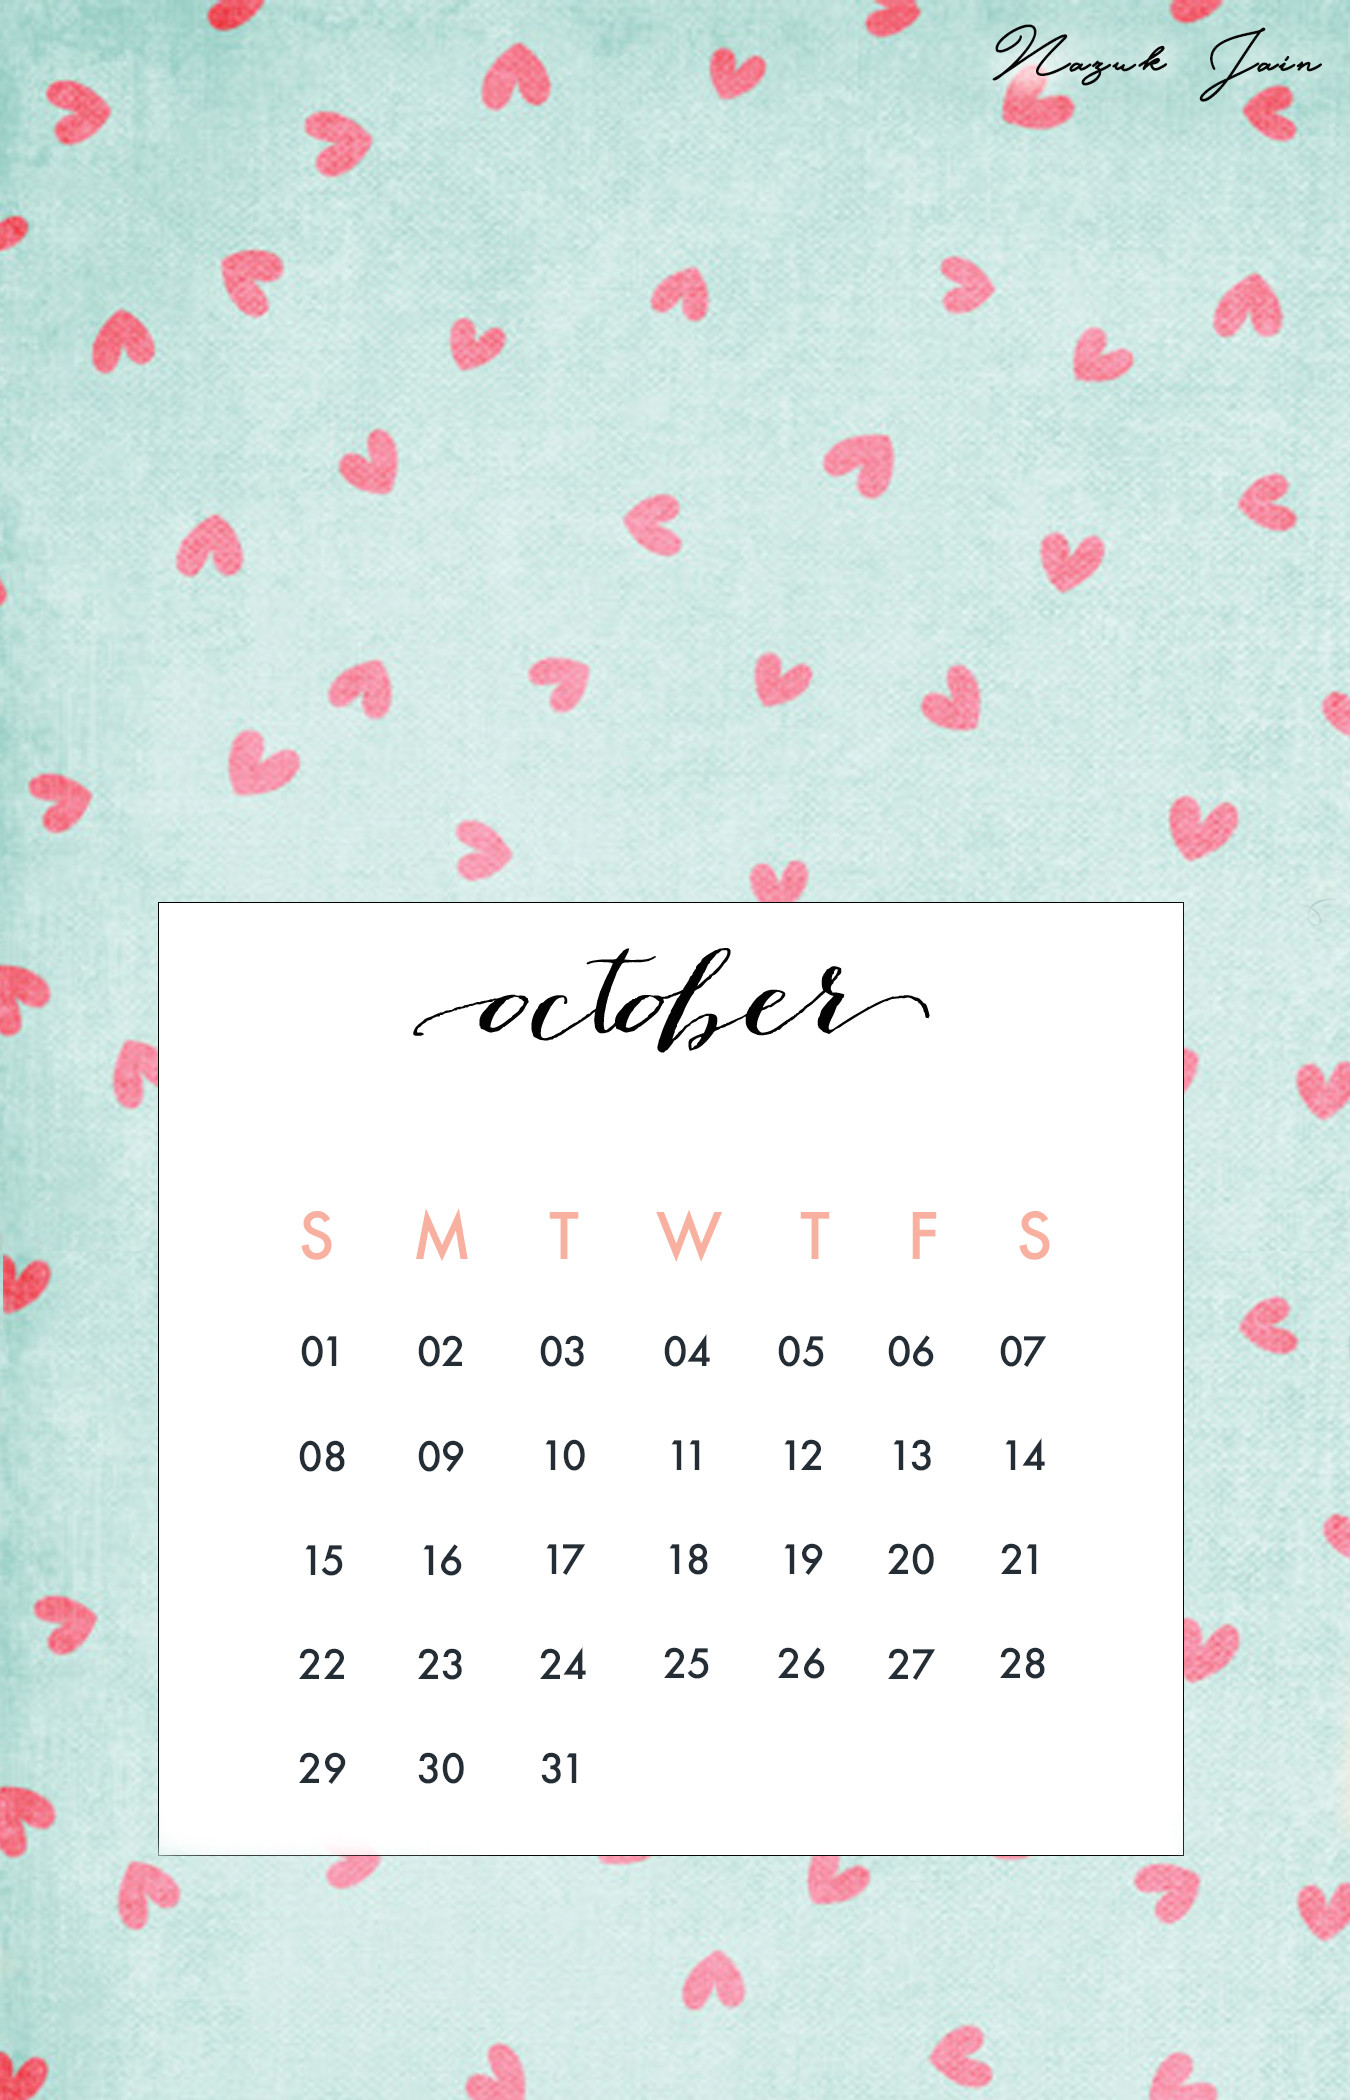 Free Desktop Calendar Wallpaper : Desktop wallpapers calendar may ·①